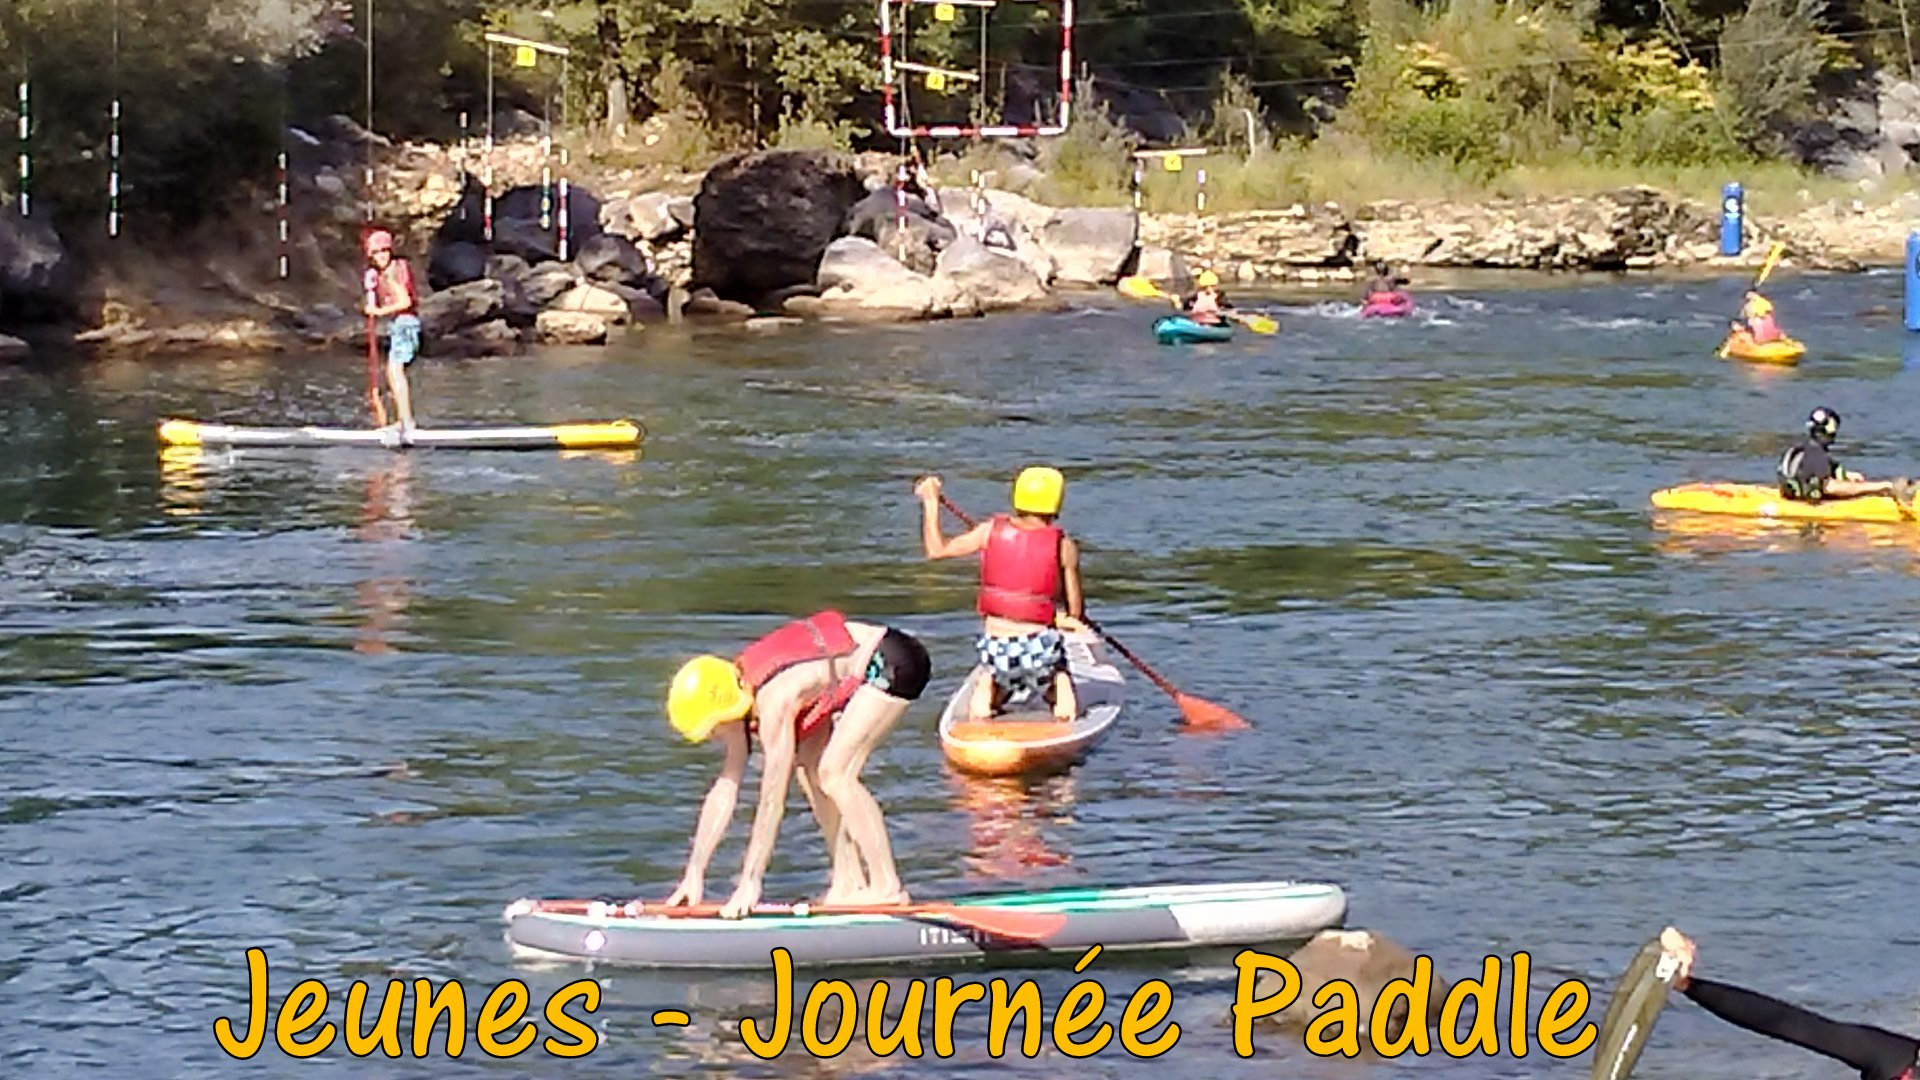 journee-paddle